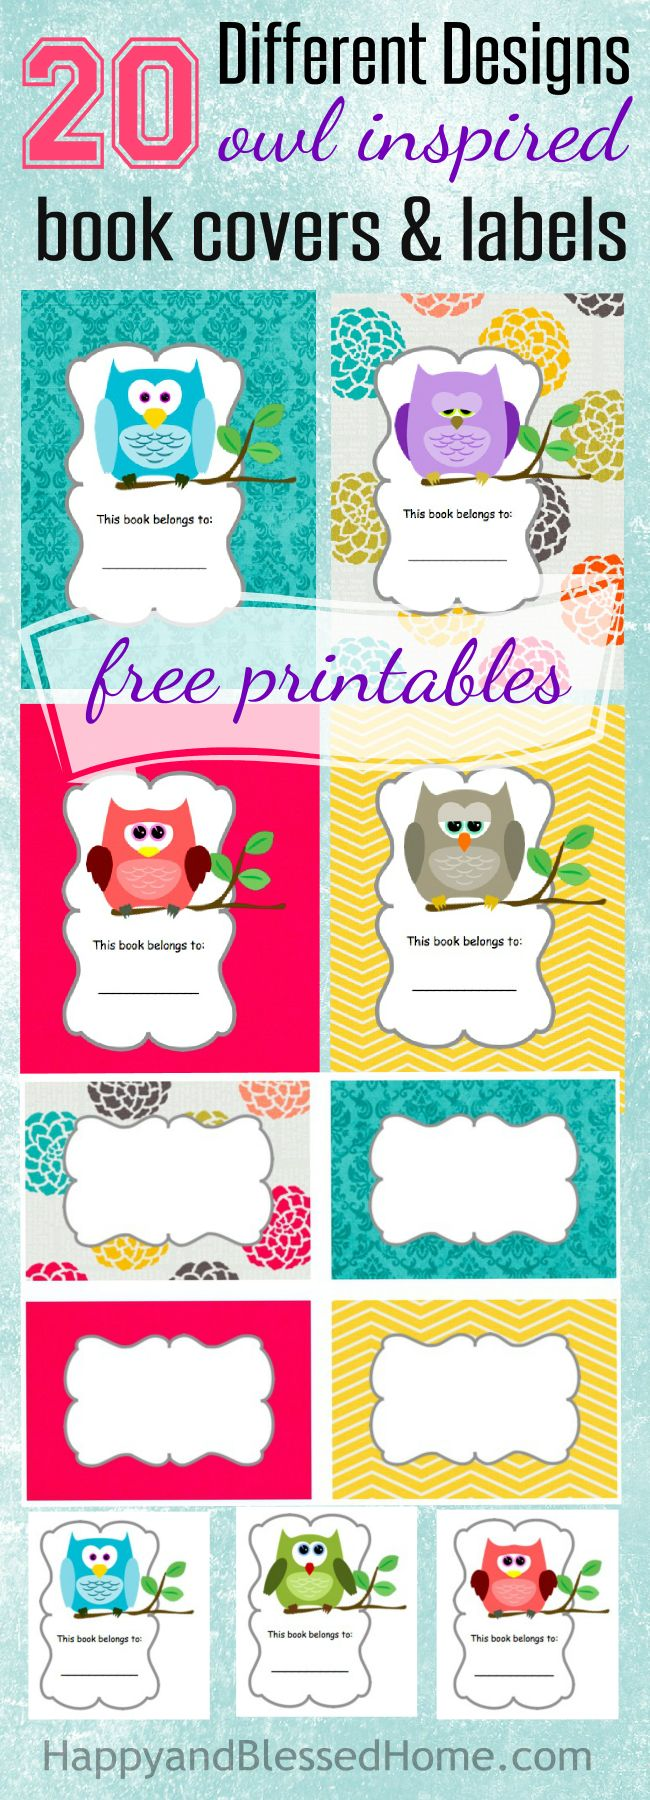 20 Different Designs Owl Inspired Book Covers and Labels Free printables HappyandBlessedHome.com